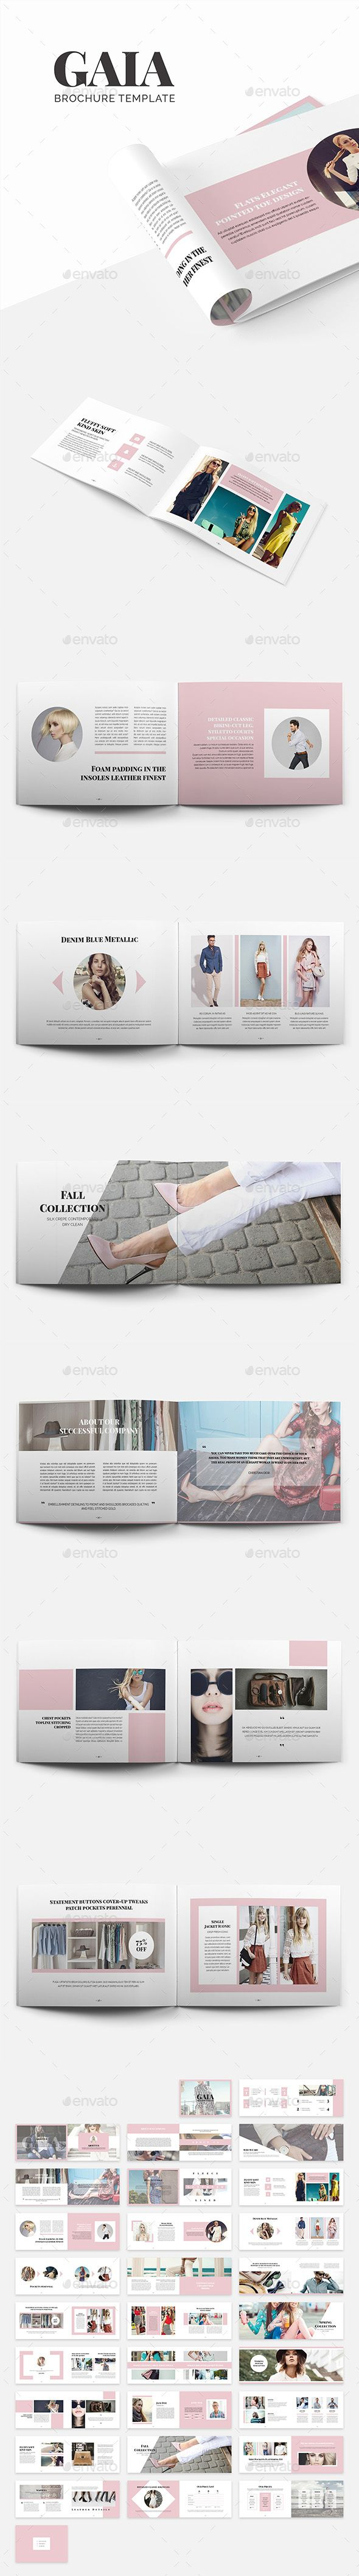 Gaia Brochure Template InDesign INDD - 58 Pages, A4 and US Letter